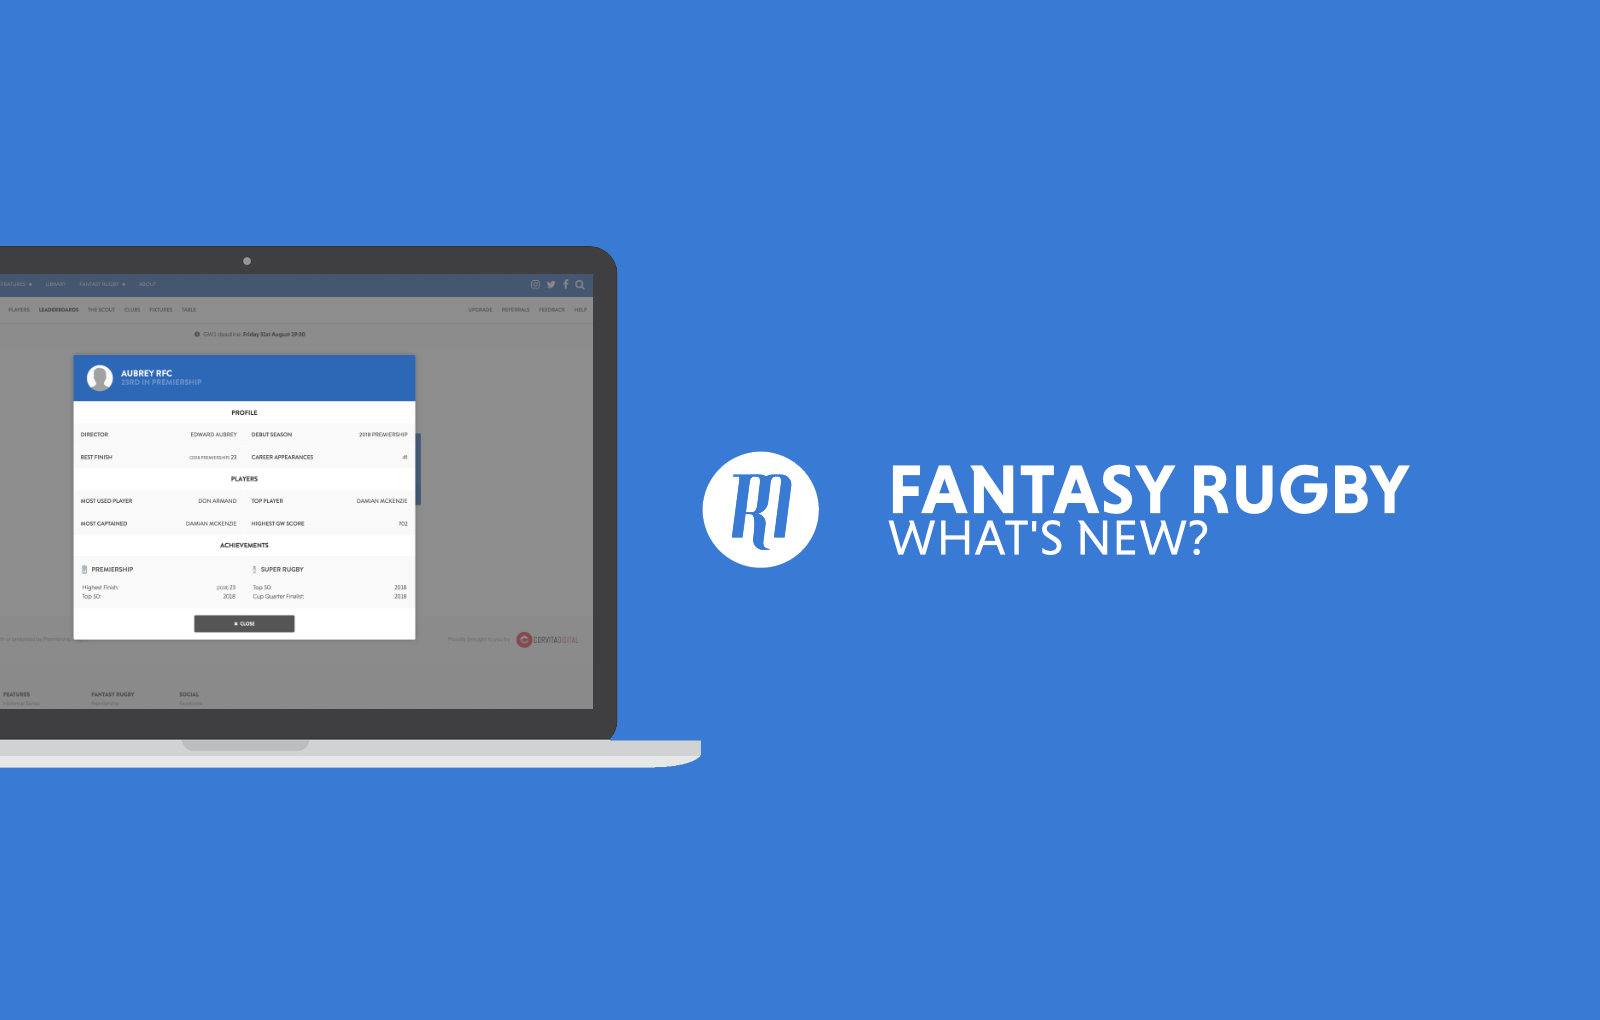 Fantasy Rugby: What's new?